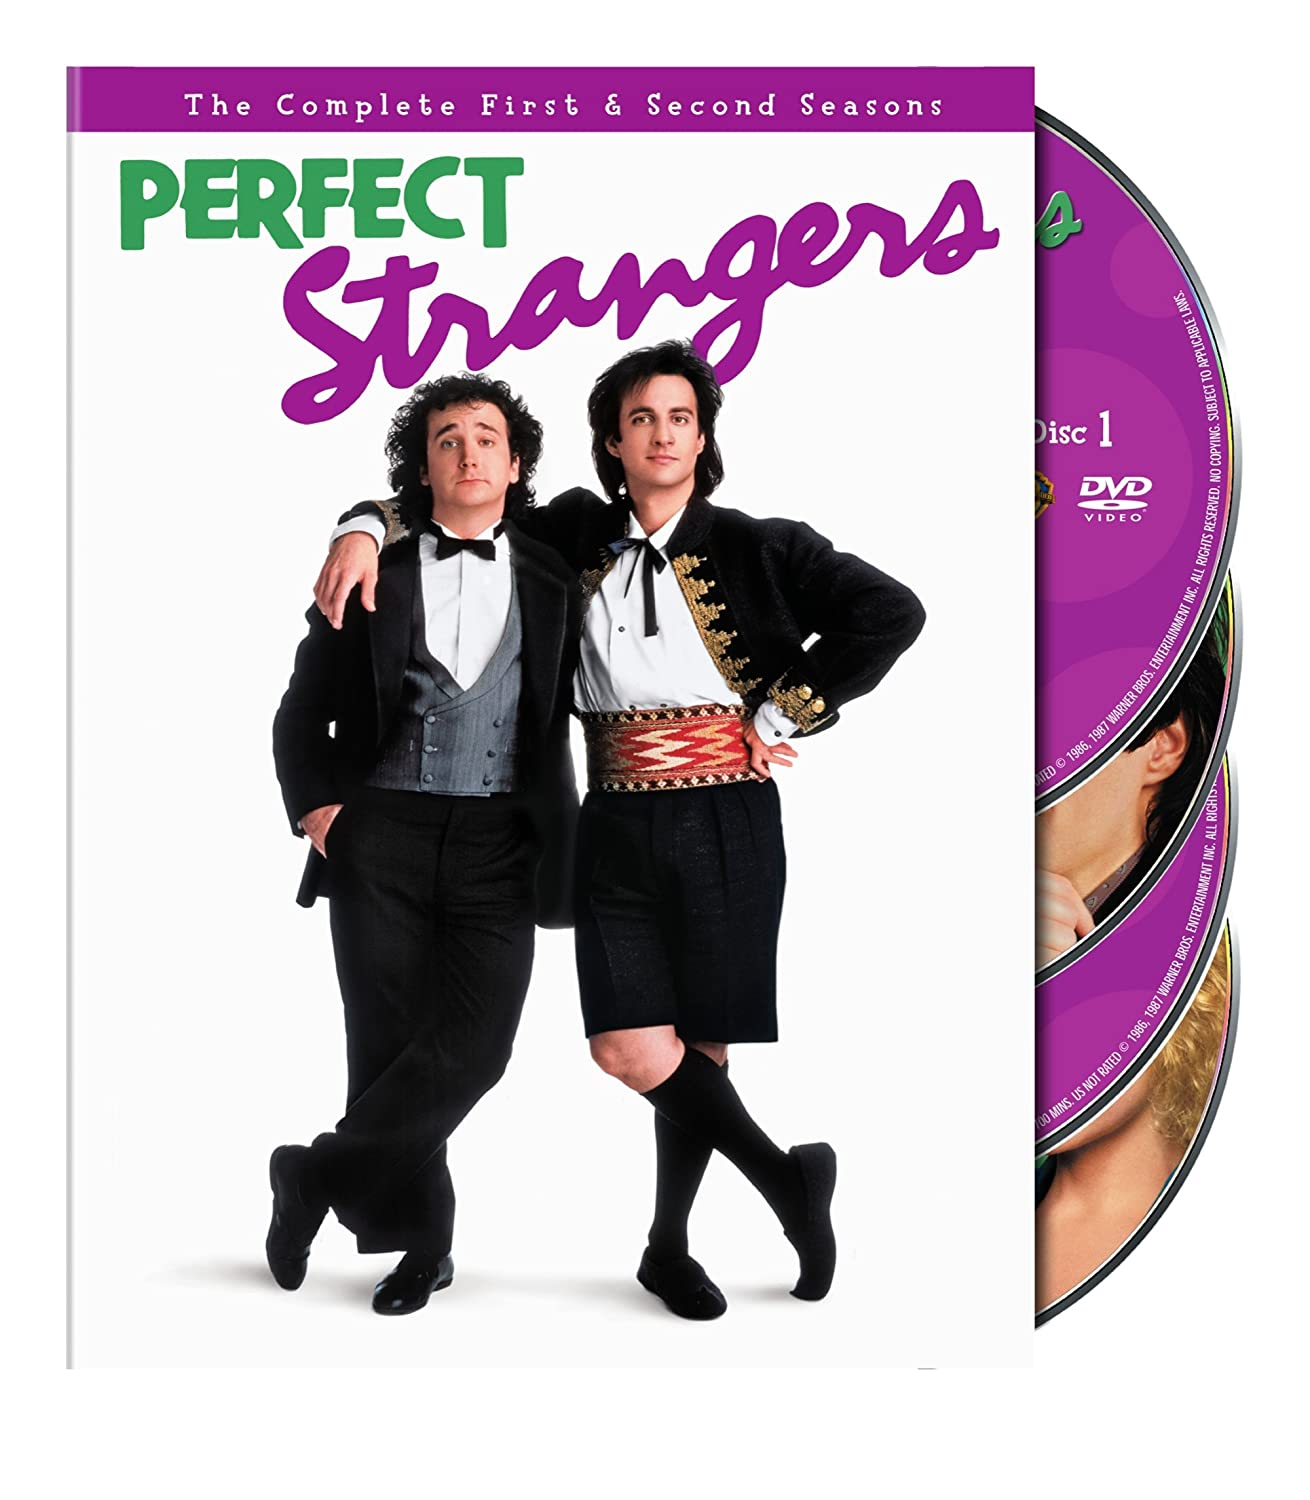 Amazon Com Perfect Strangers The Complete First And Second Seasons Mark Linn Baker Bronson Pinchot Rebeca Arthur Melanie Wilson Jomarie Payton Belita Moreno Sam Anderson Alisan Porter F J O Neil Eugene Roche Greg Antonacci James